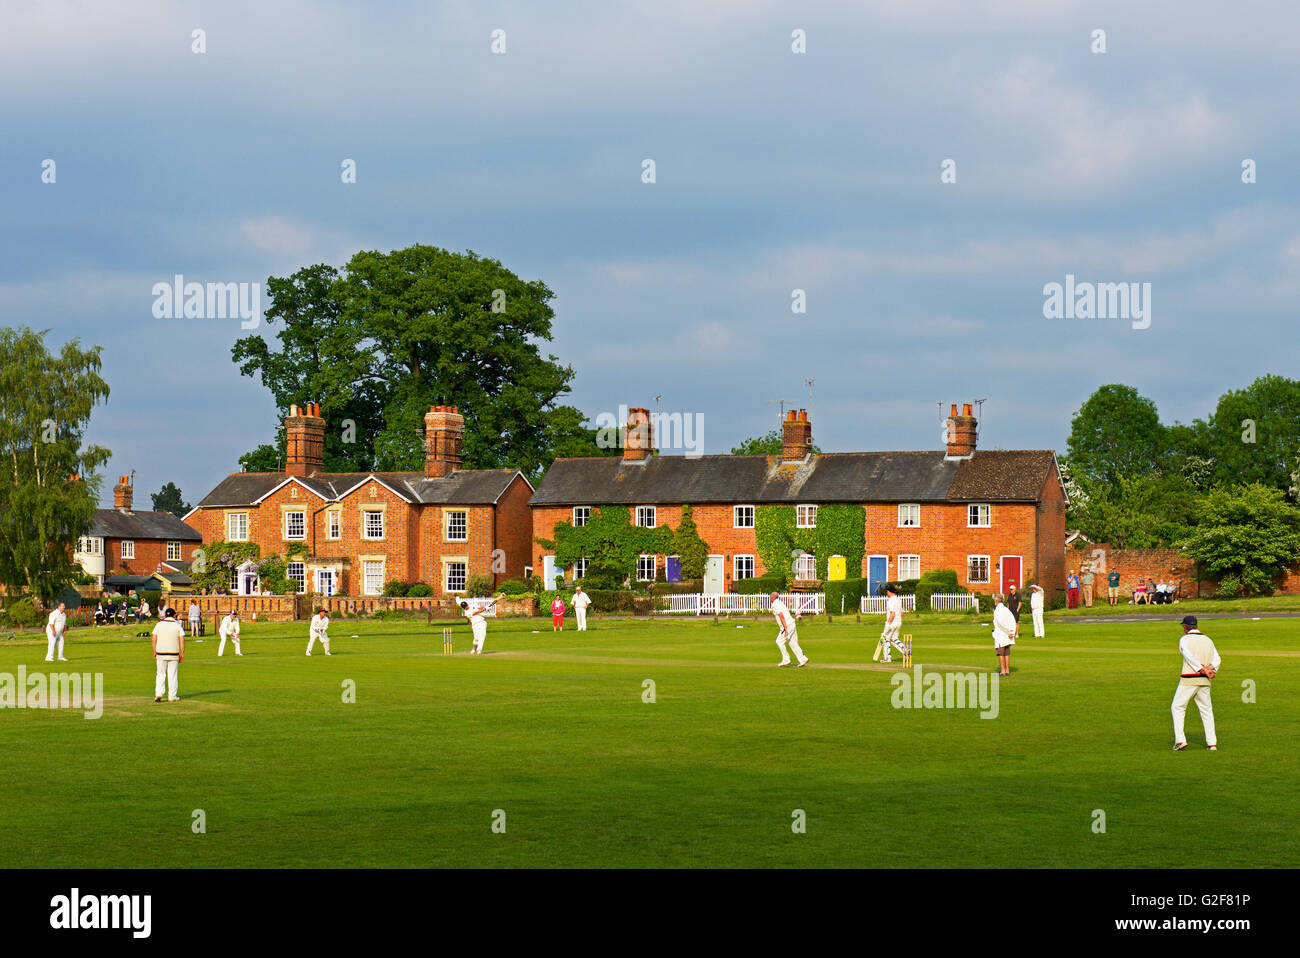 Game of cricket being played in the village of Hartley Wintney, Hampshire, England UK - Stock Image